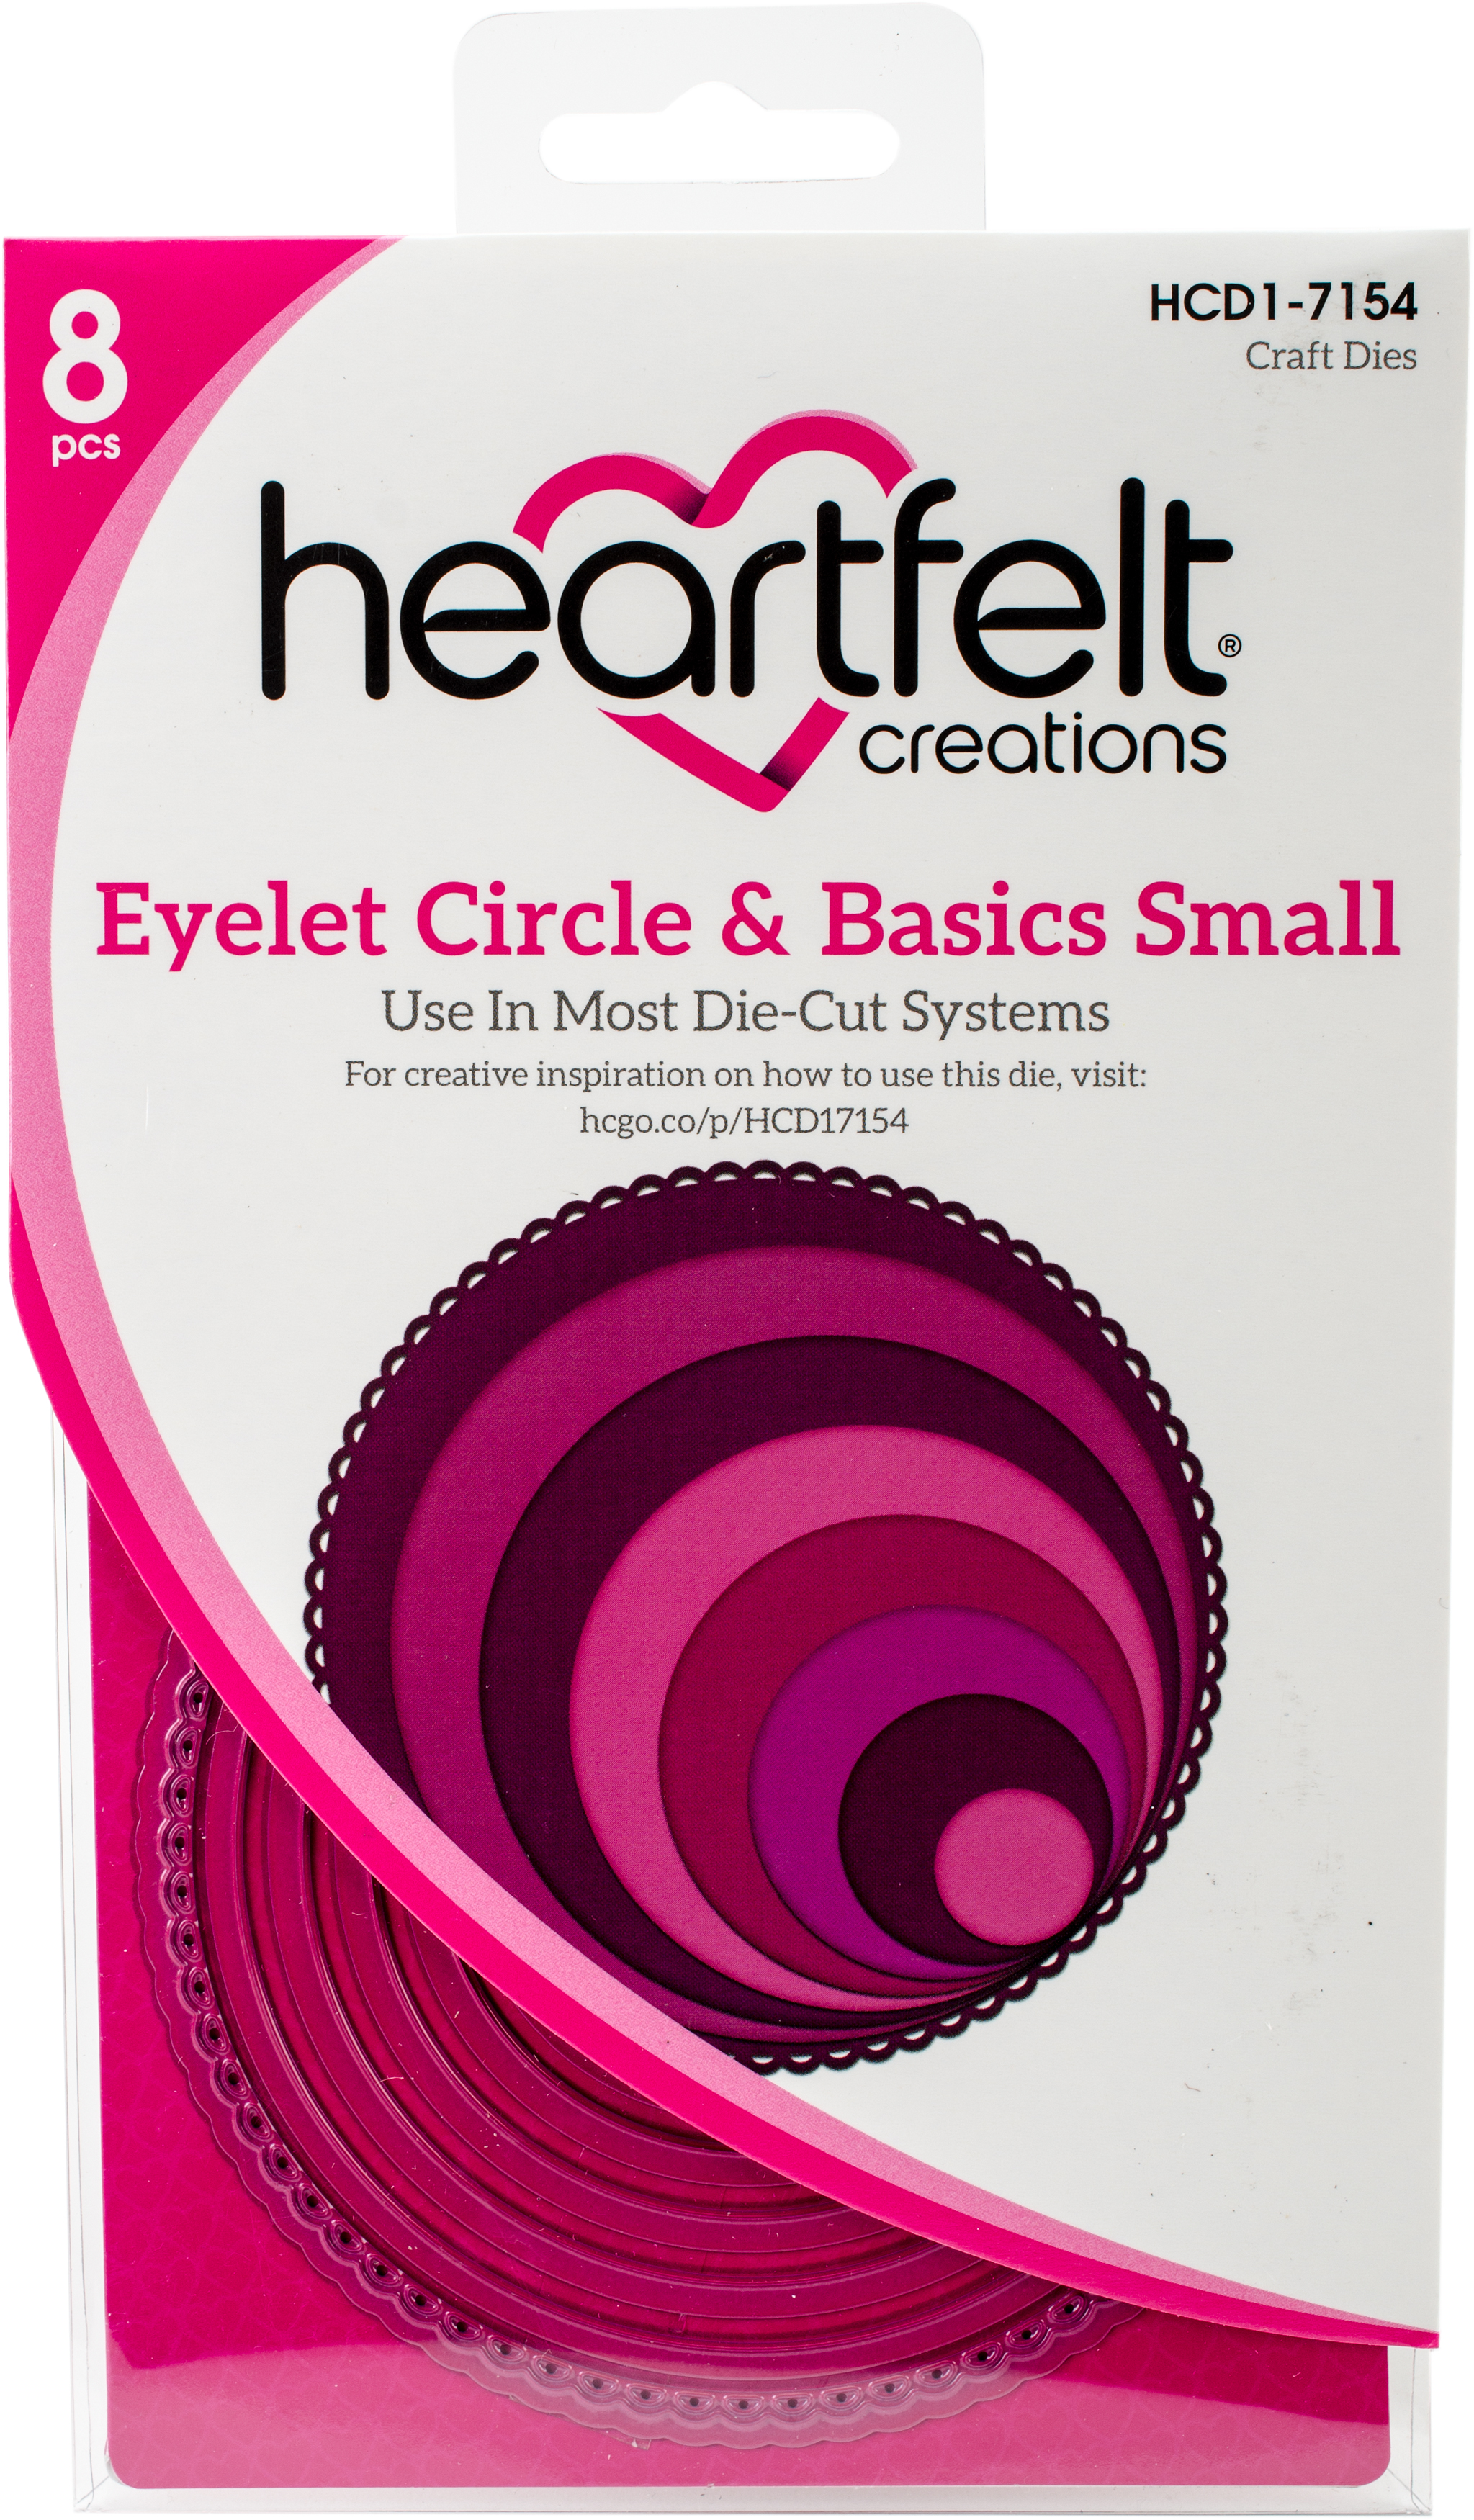 Heartfelt Creations Cut & Emboss Dies-Eyelet Circle & Basics Small